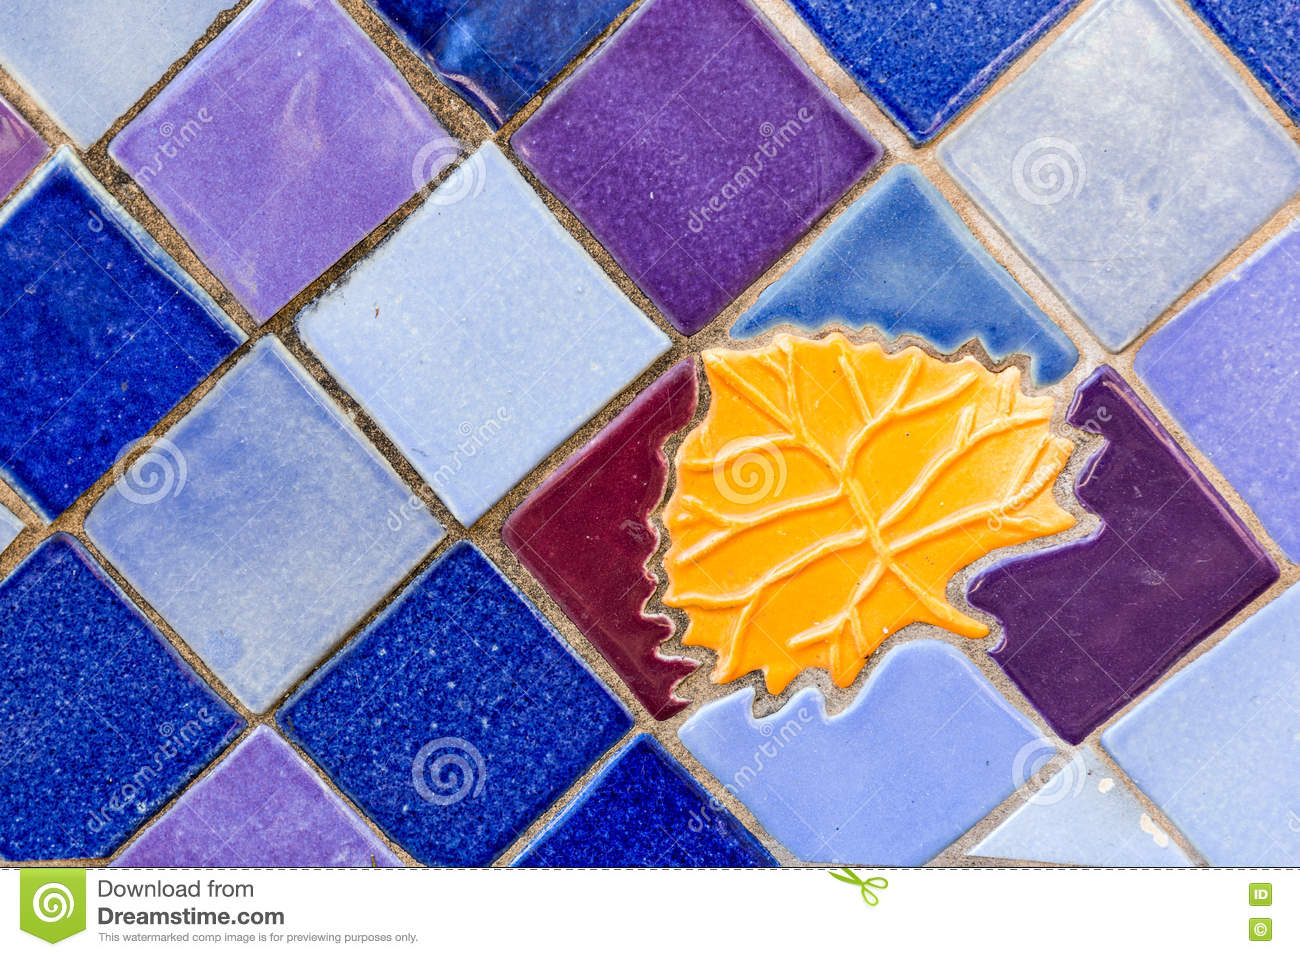 Colorful Ceramic Tile Background With Golden Leaf Inset. Stock Image ...